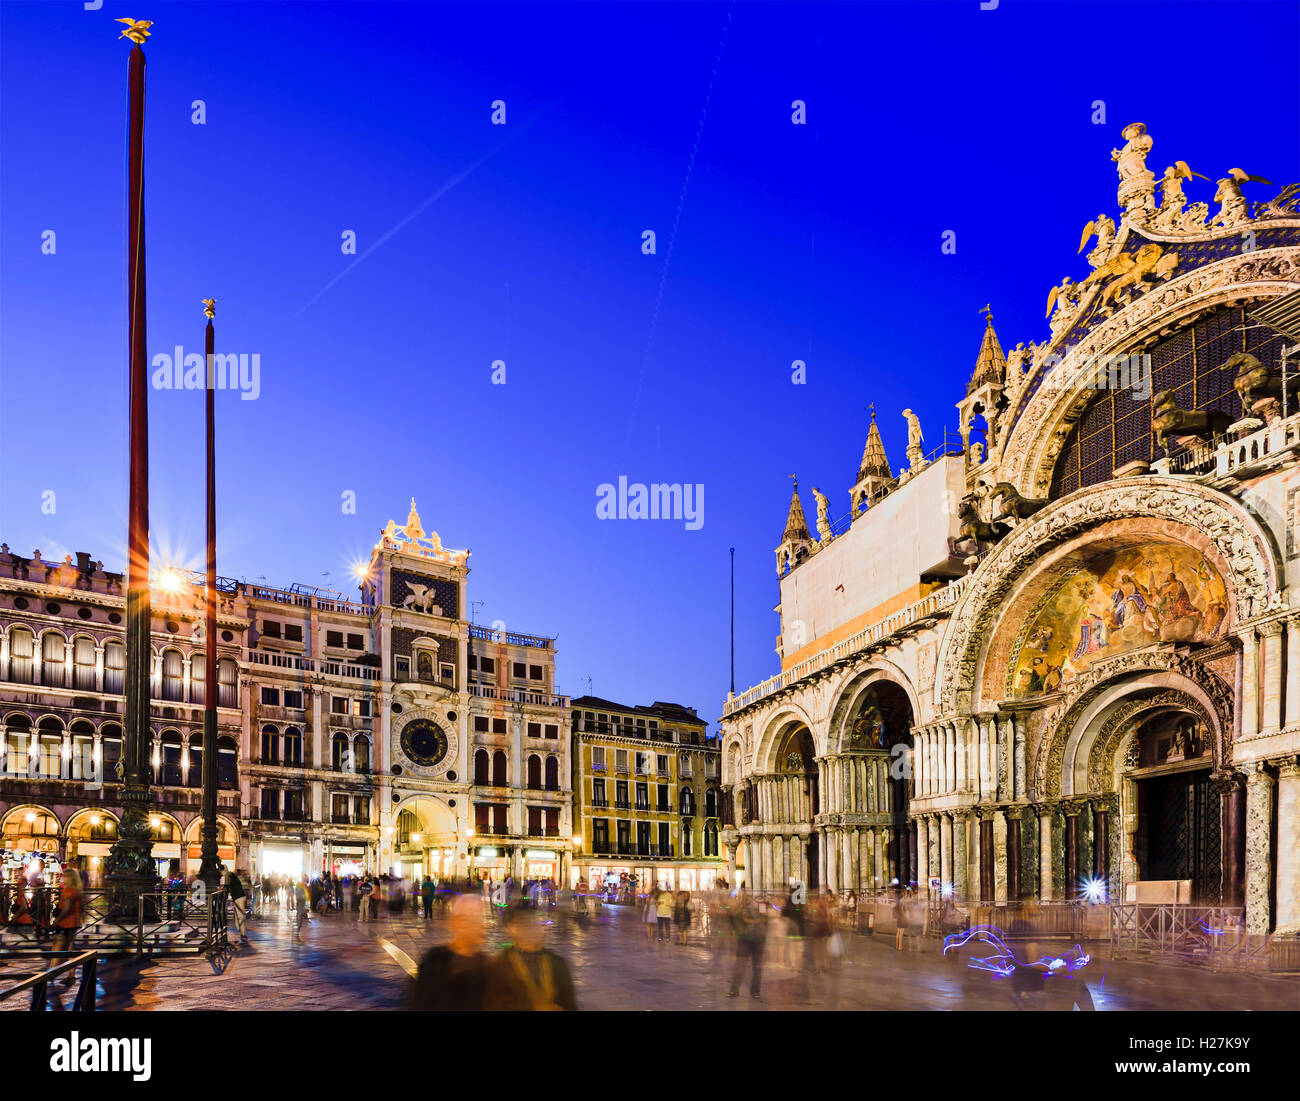 San marco square of Venice between Cathedral and Yex Change S.R.L. A ...